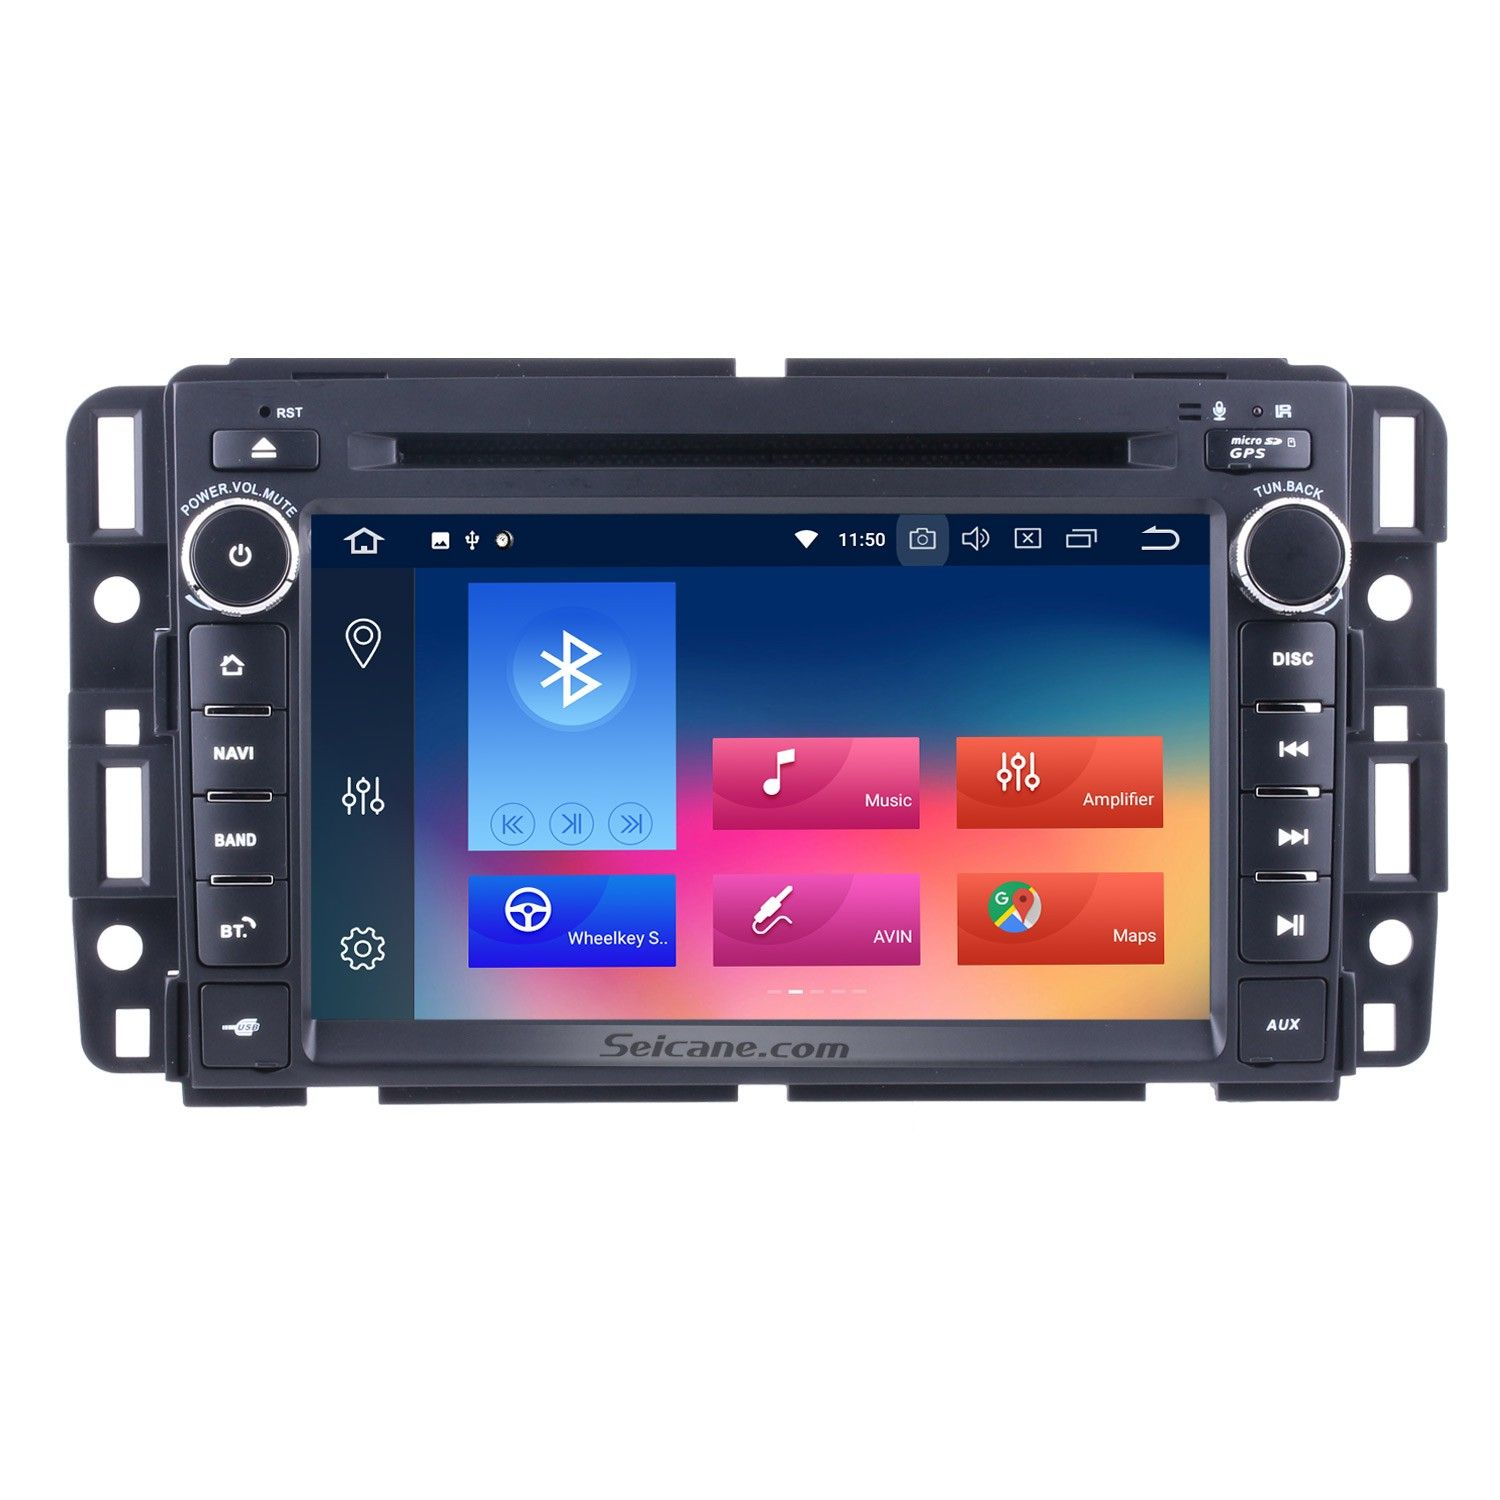 Seicane 2 Din Android 8 0 Radio Head Unit For 2009 2010 2011 Gmc